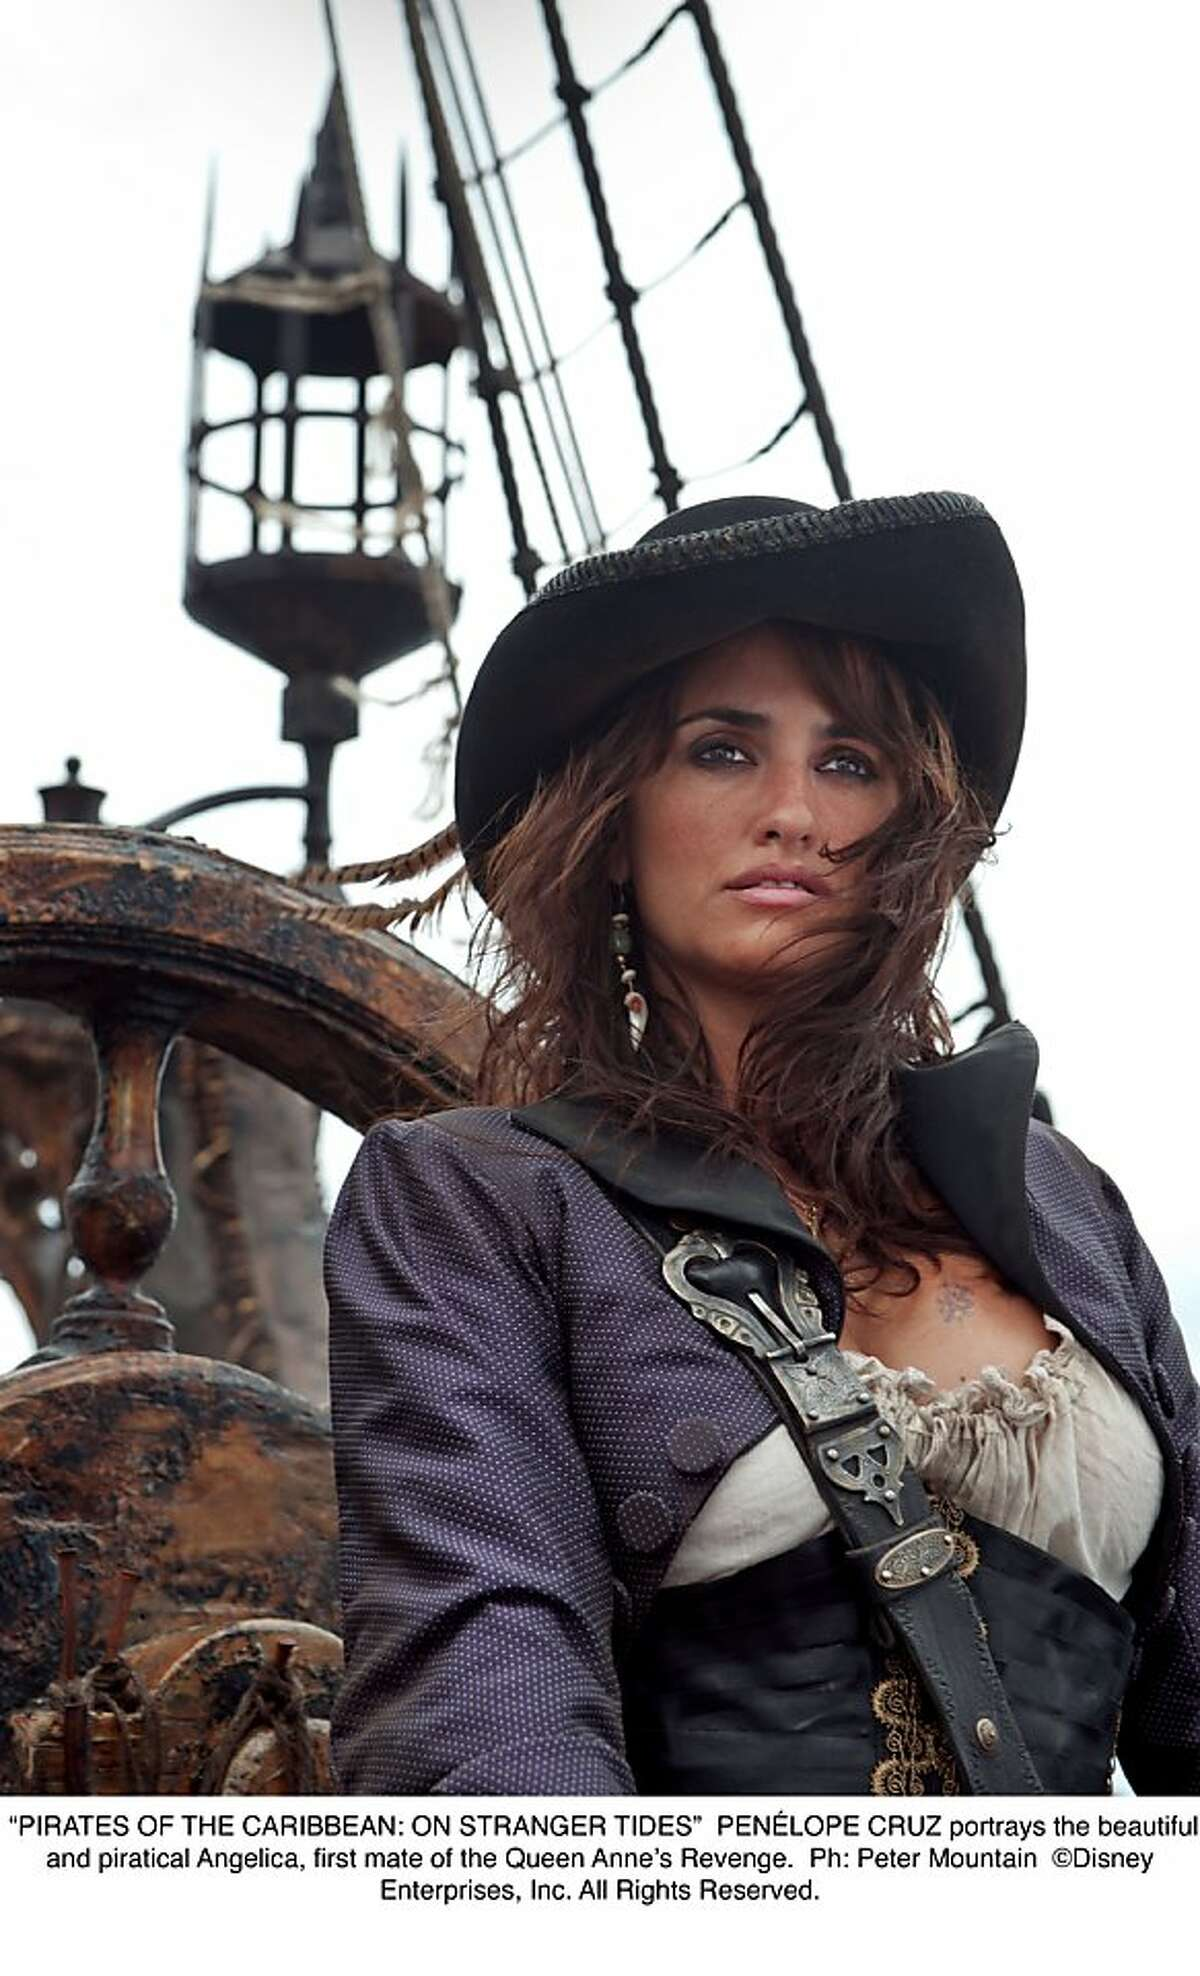 PEN?LOPE CRUZ portrays the beautiful and piratical Angelica, first mate of the Queen Anne's Revenge.